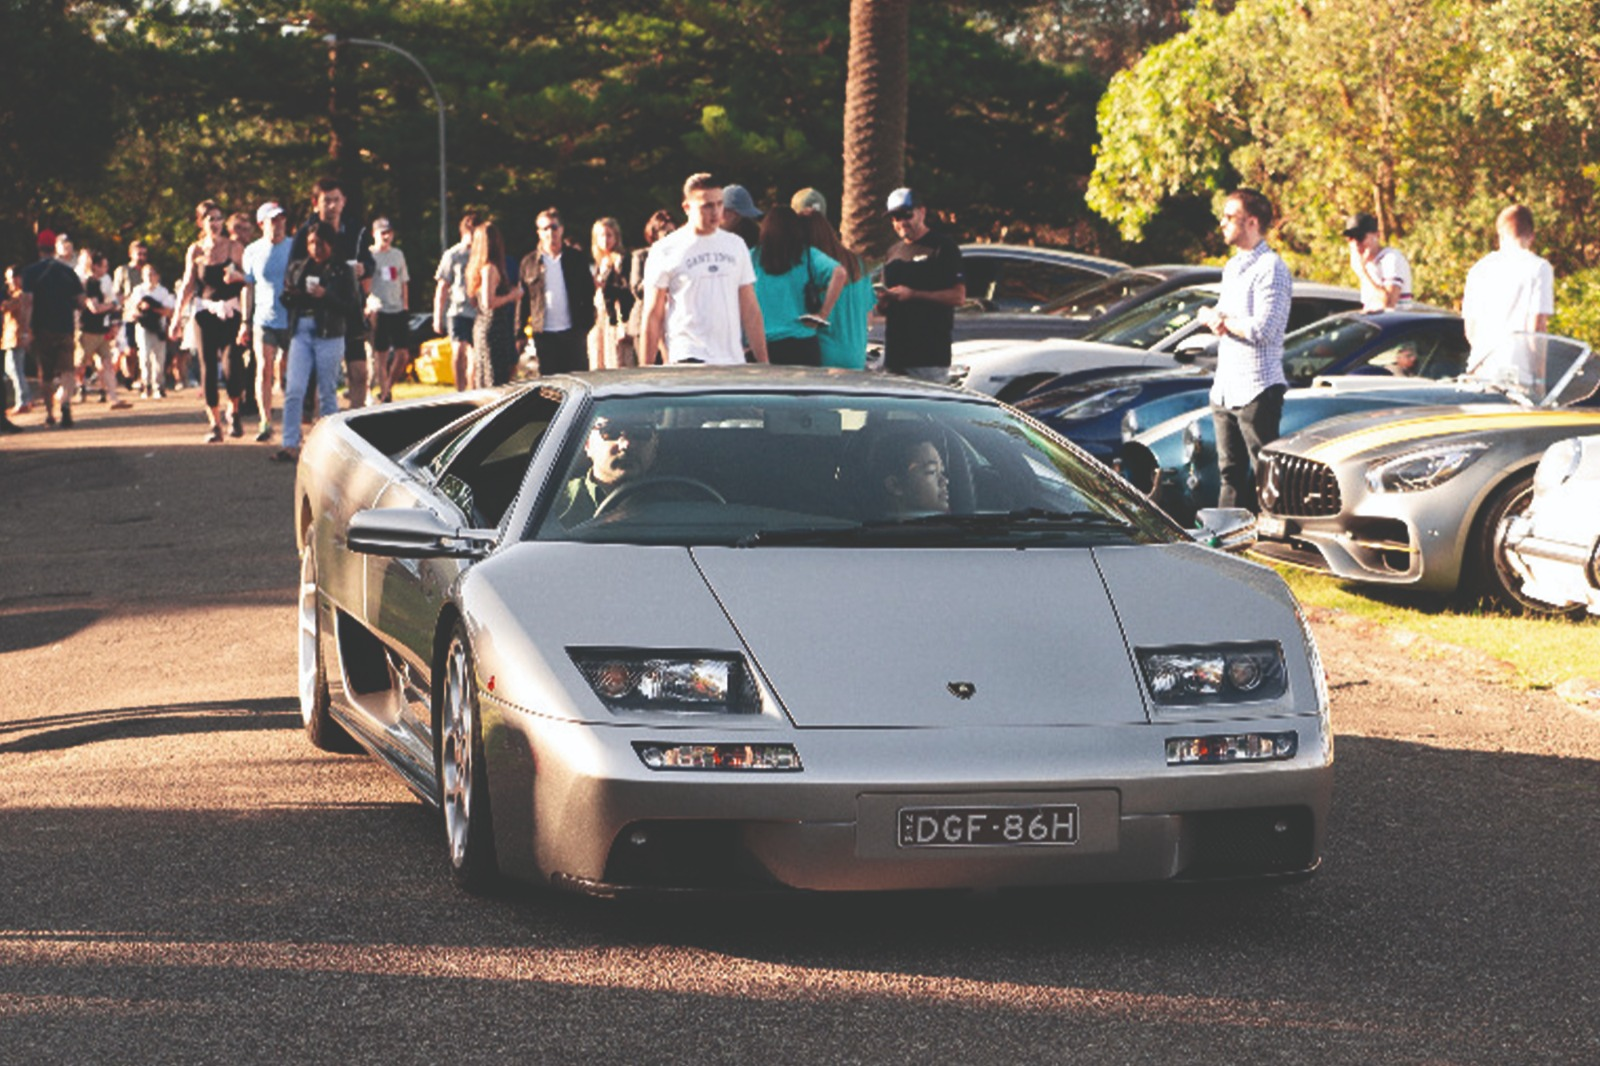 Photo Gallery: VCC x Collecting Cars Australia Autumn Gathering